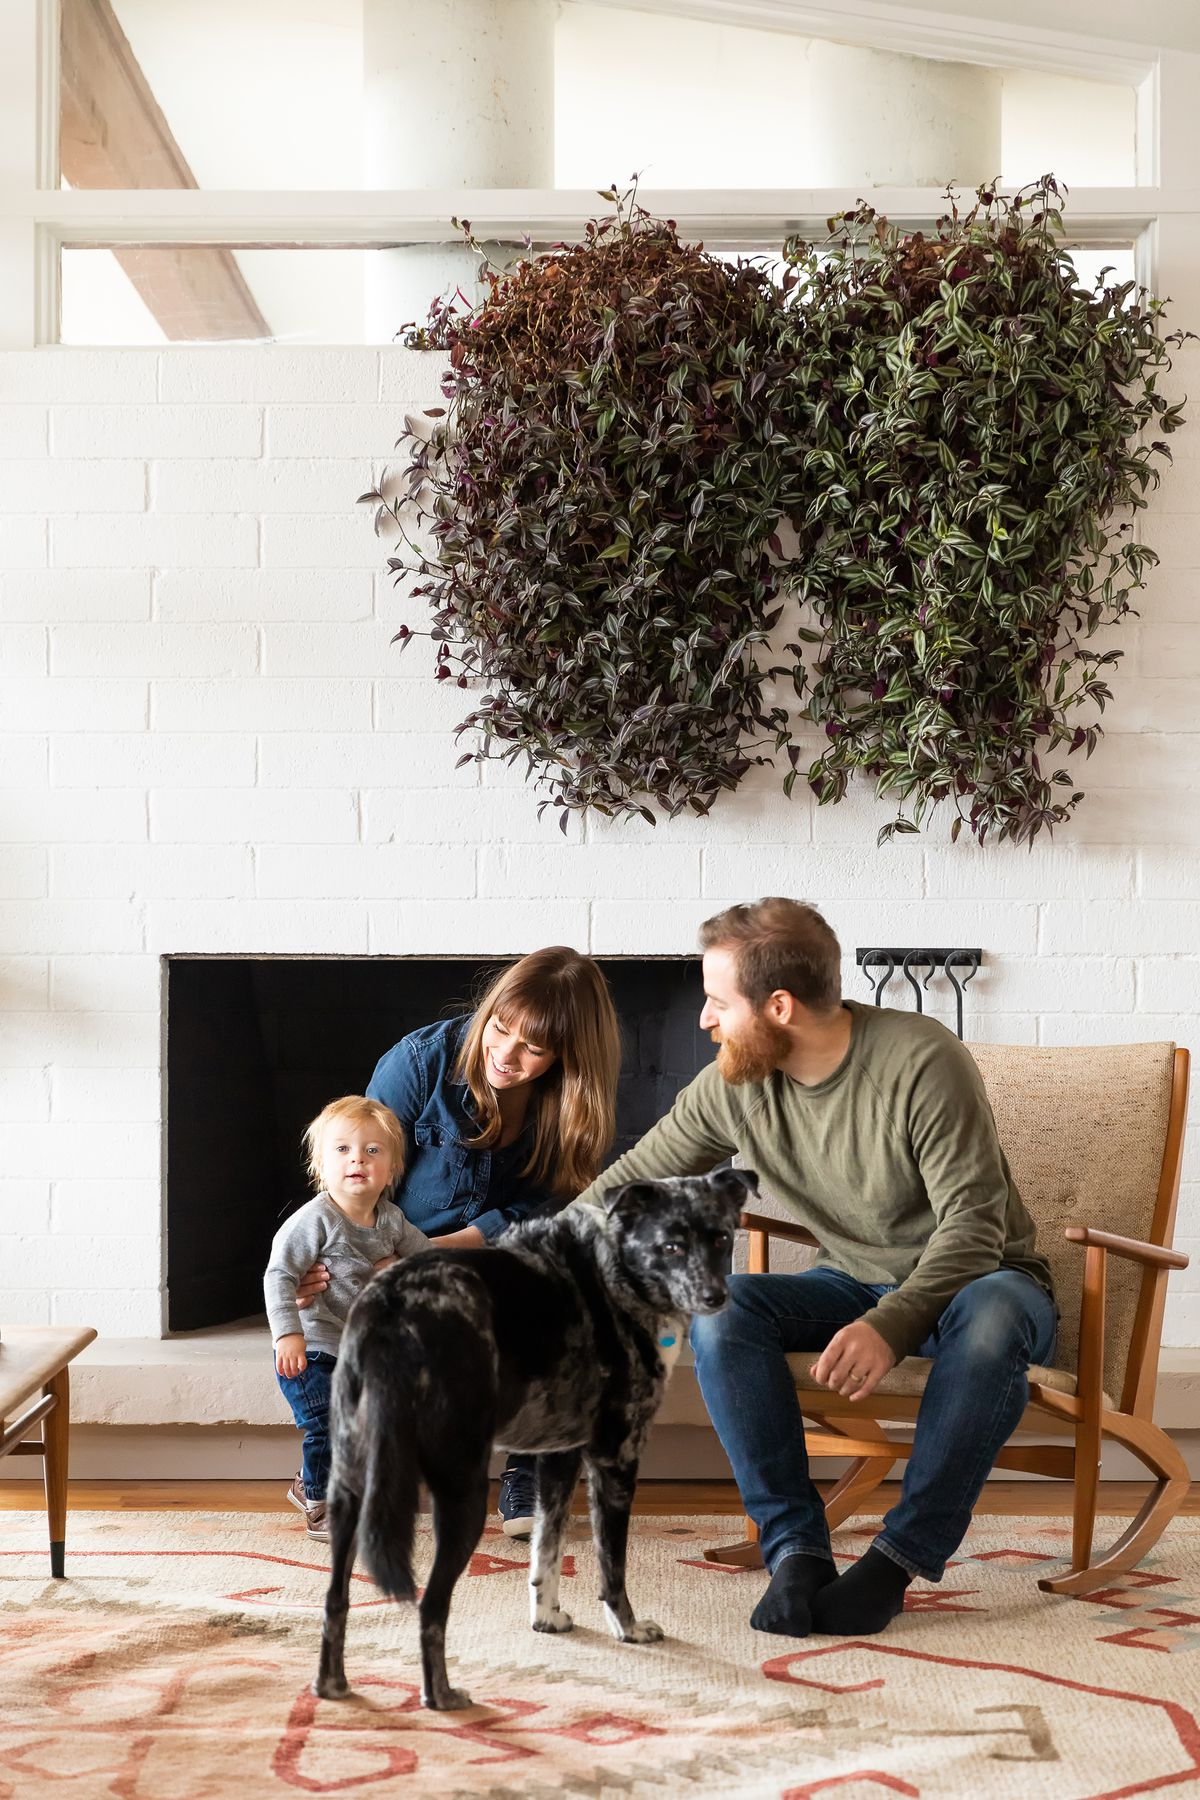 The homeowners, a man and a woman, sit on chairs in front of a fireplace and look towards a toddler. A large grey and black dog sits between them. There are hanging plants in planters hanging over the family.